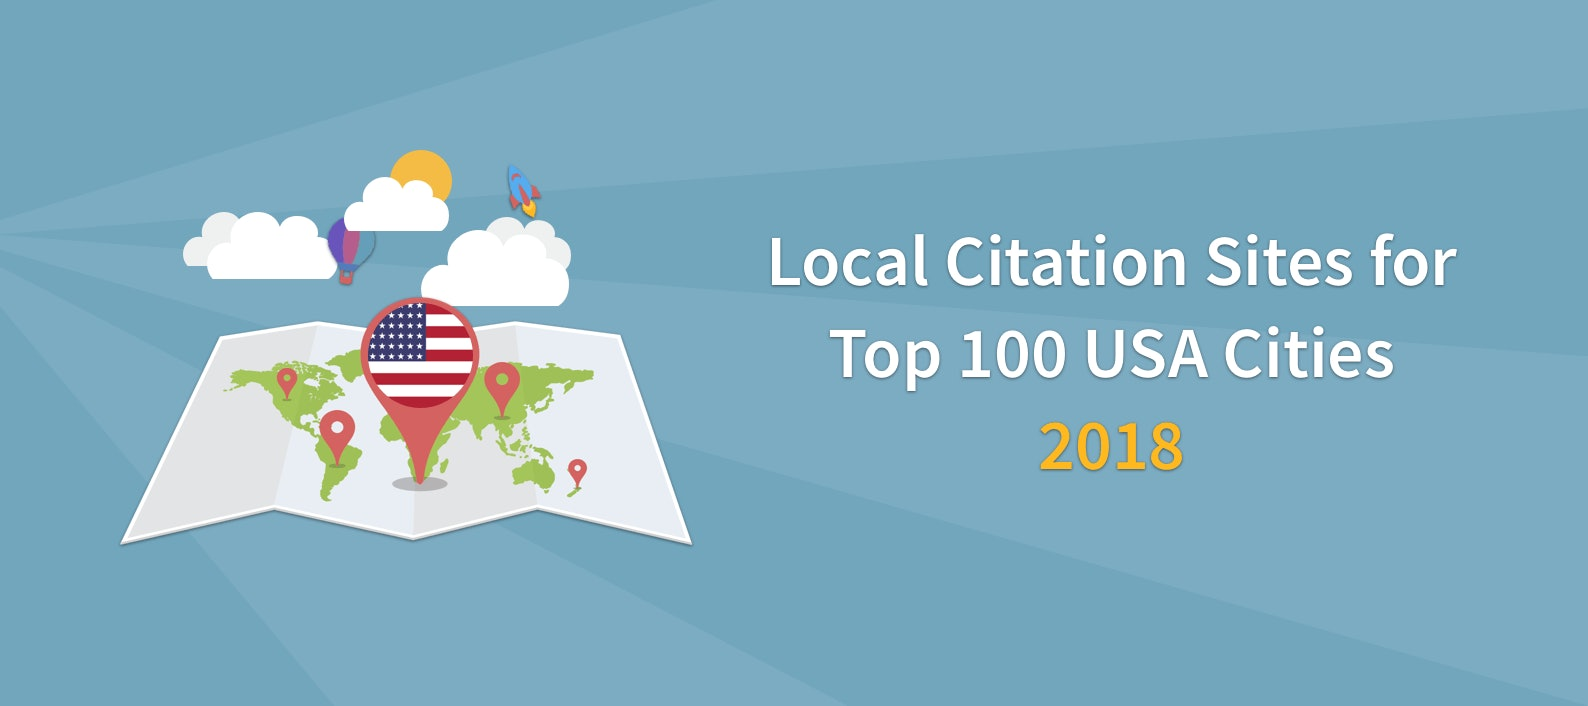 Local Citation Sites for Top 100 US Cities | USA City